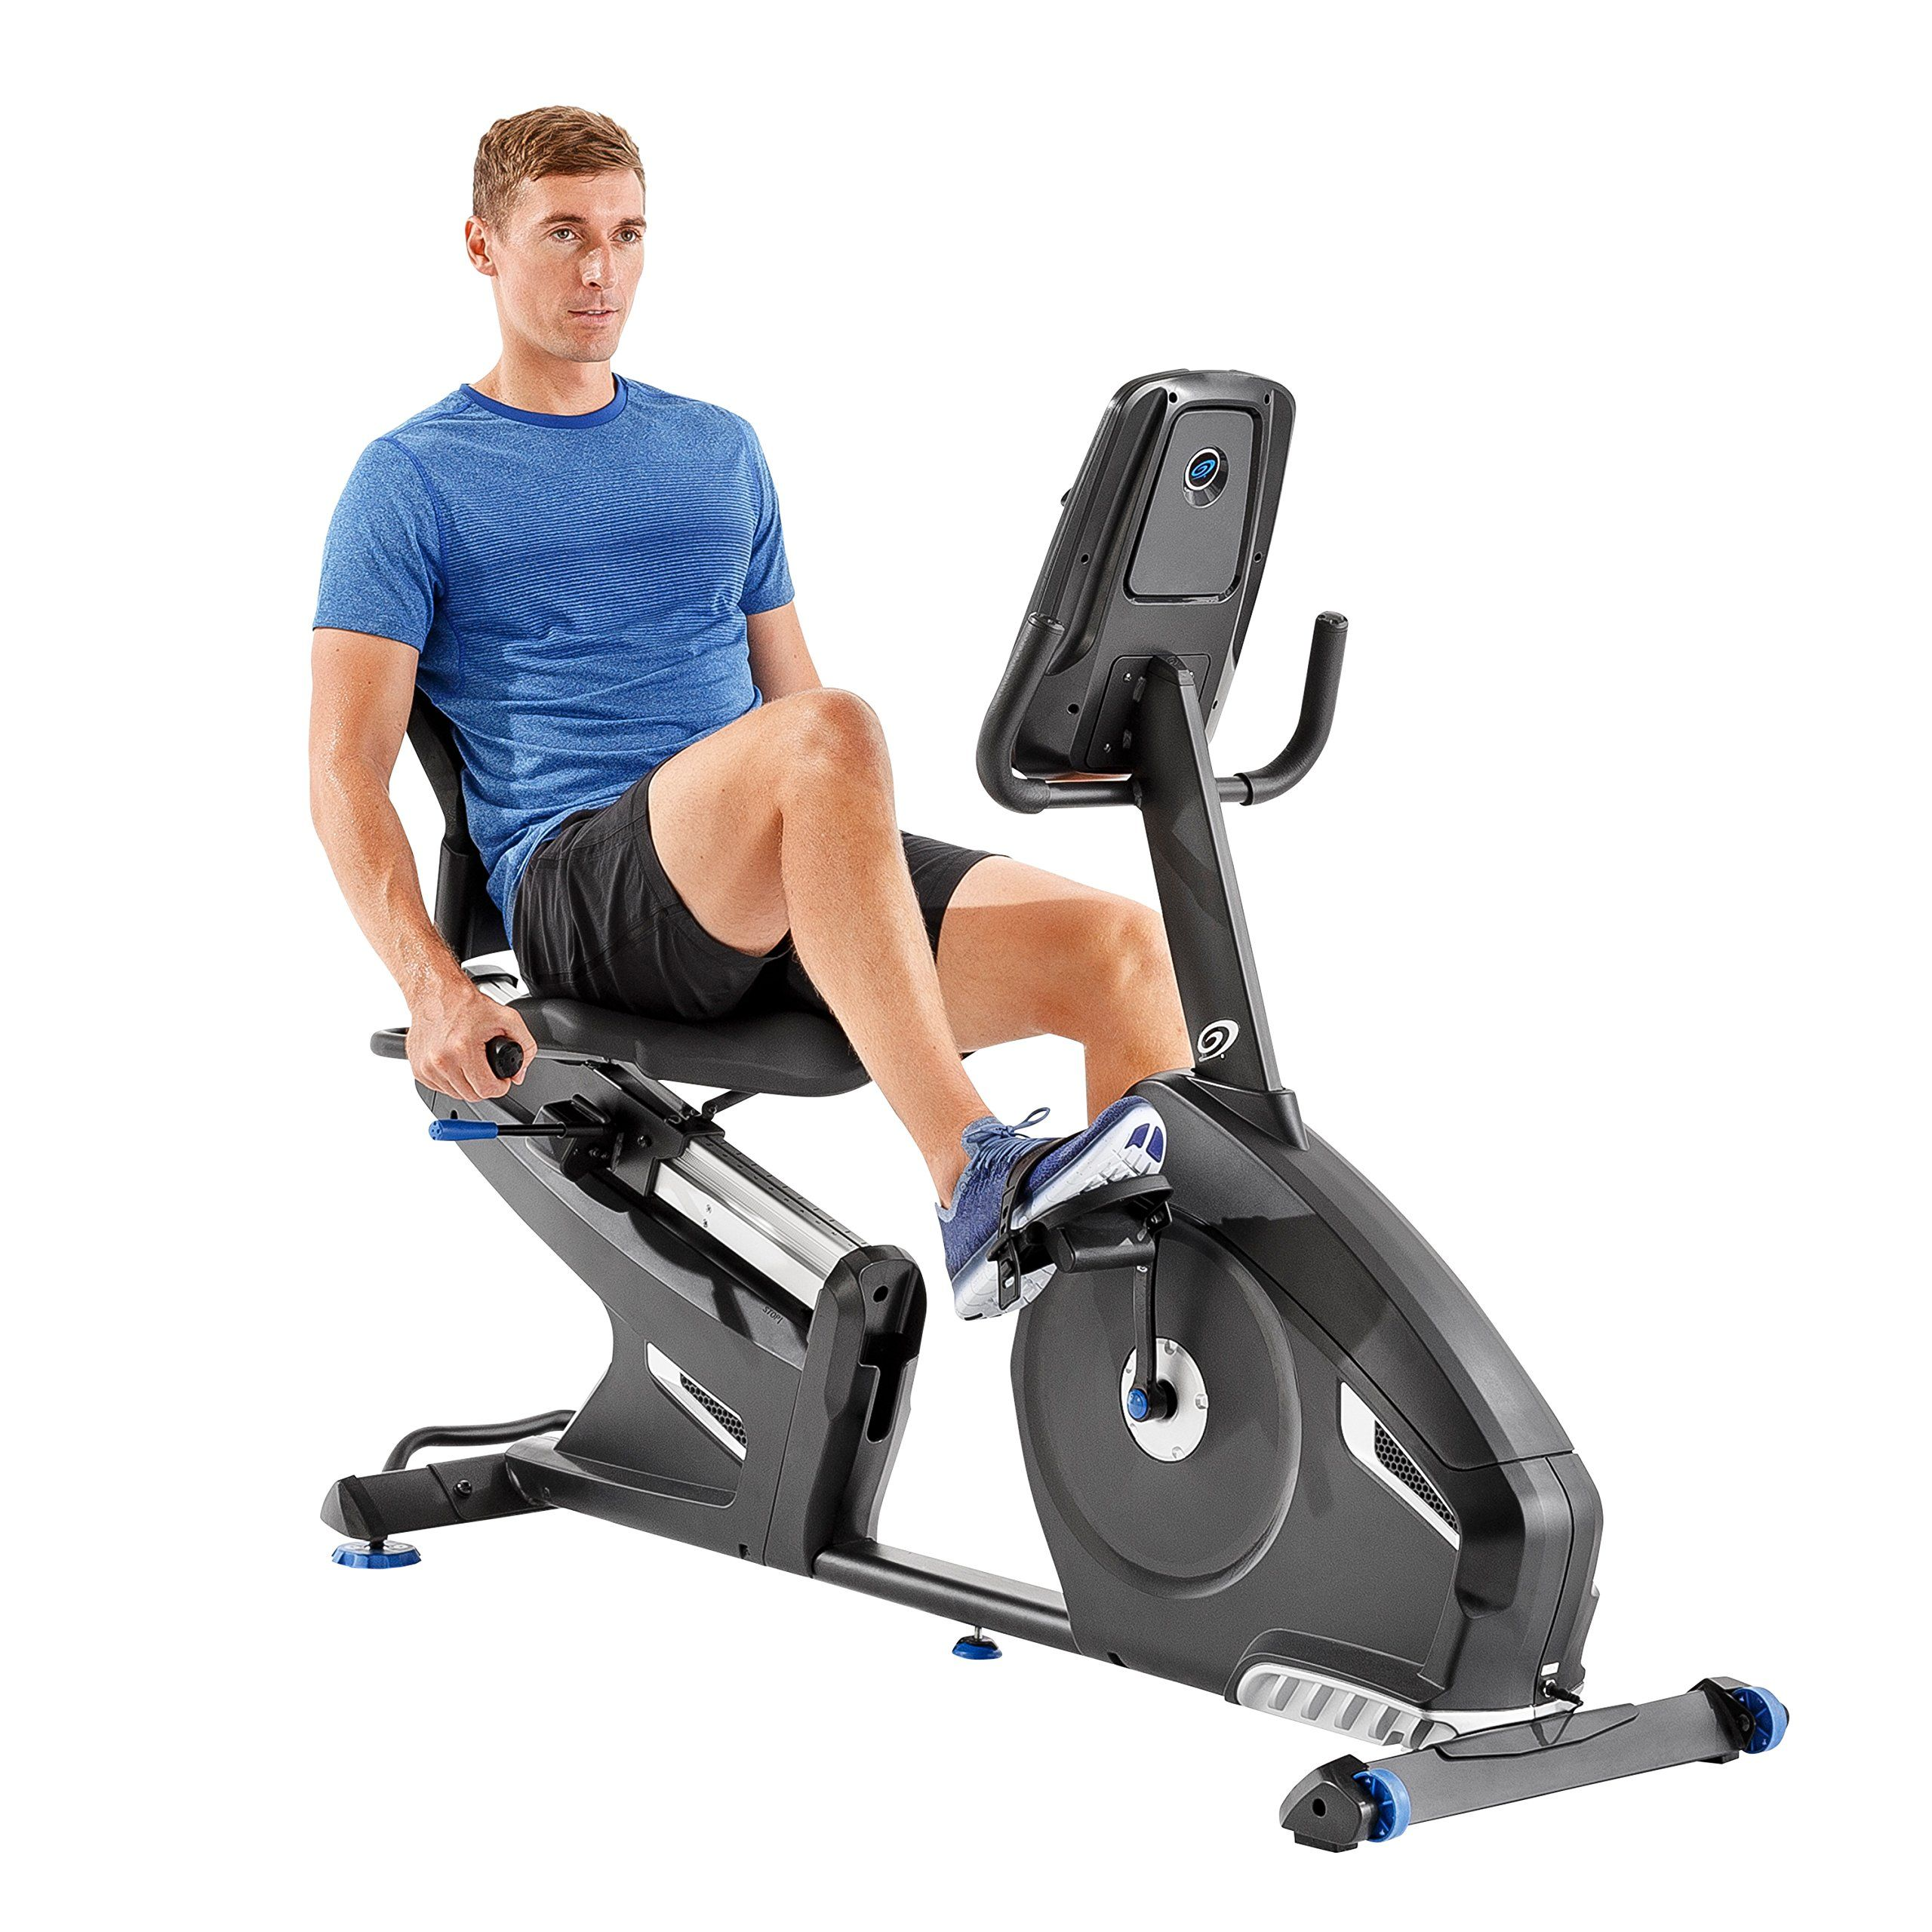 Recumbent Bike Reviews For 2019 10 Best Recumbent Exercise Bikes Recumbent Bike Workout Biking Workout Best Exercise Bike